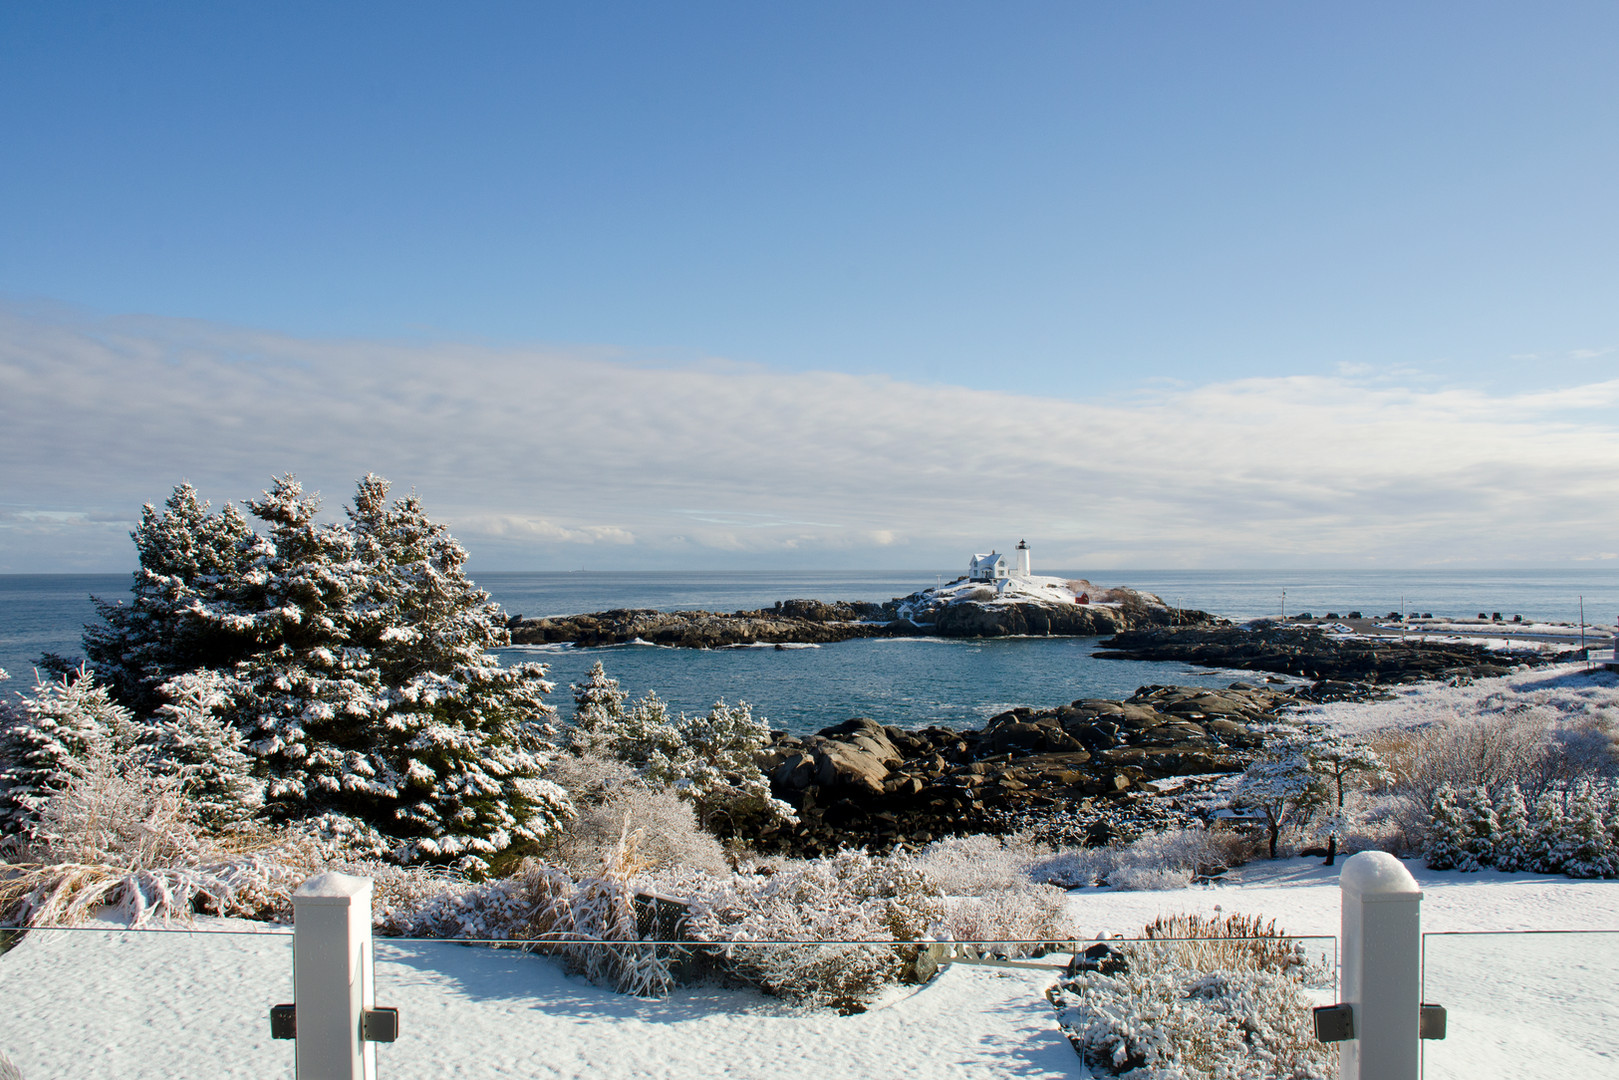 Year-Round Hotel in York, Maine Overlooking Nubble Lighthouse